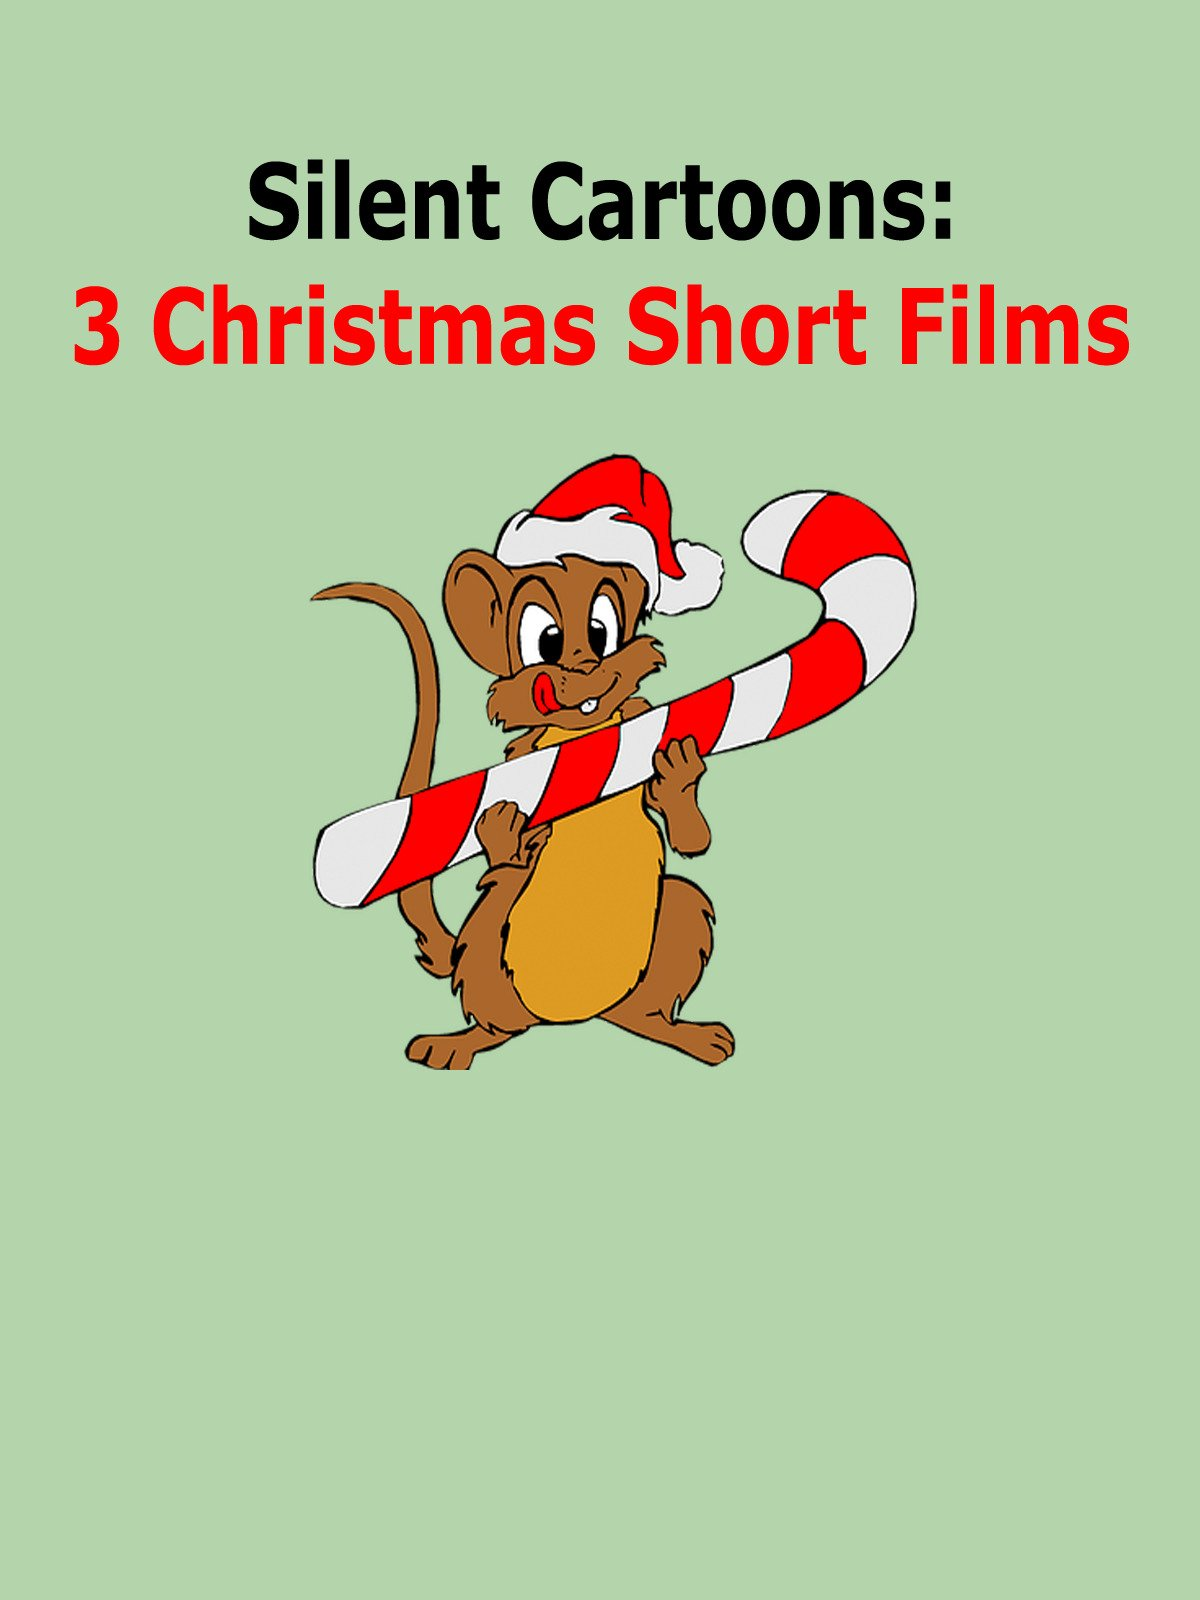 Silent Cartoons: 3 Christmas Short Films